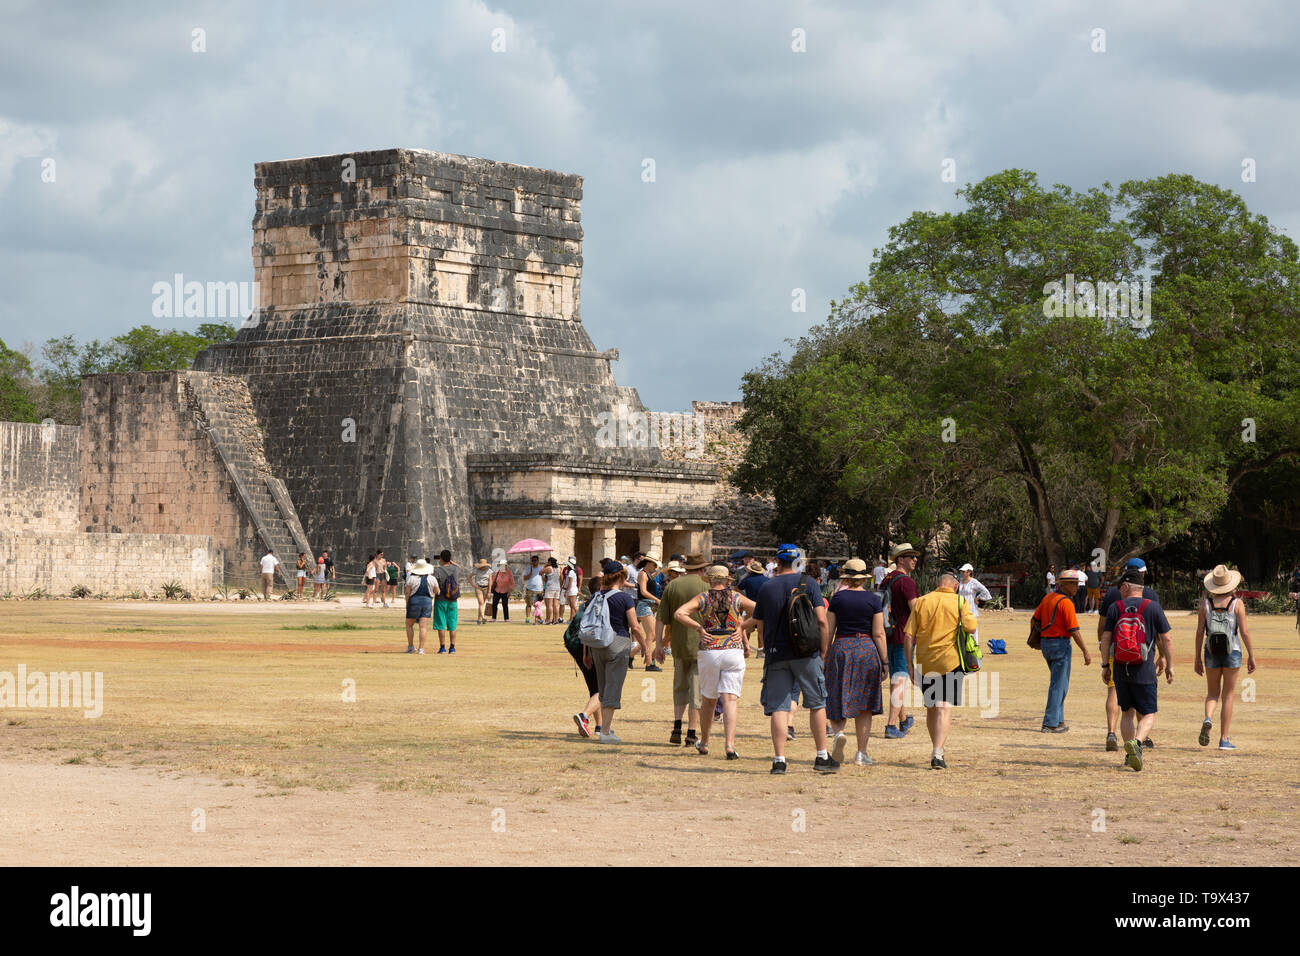 Chichen Itza, Mexico ancient maya ruins - UNESCO world heritage site;  visitors heading to the Great Ball Court, Chichen Itza, Yucatan, Mexico - Stock Image